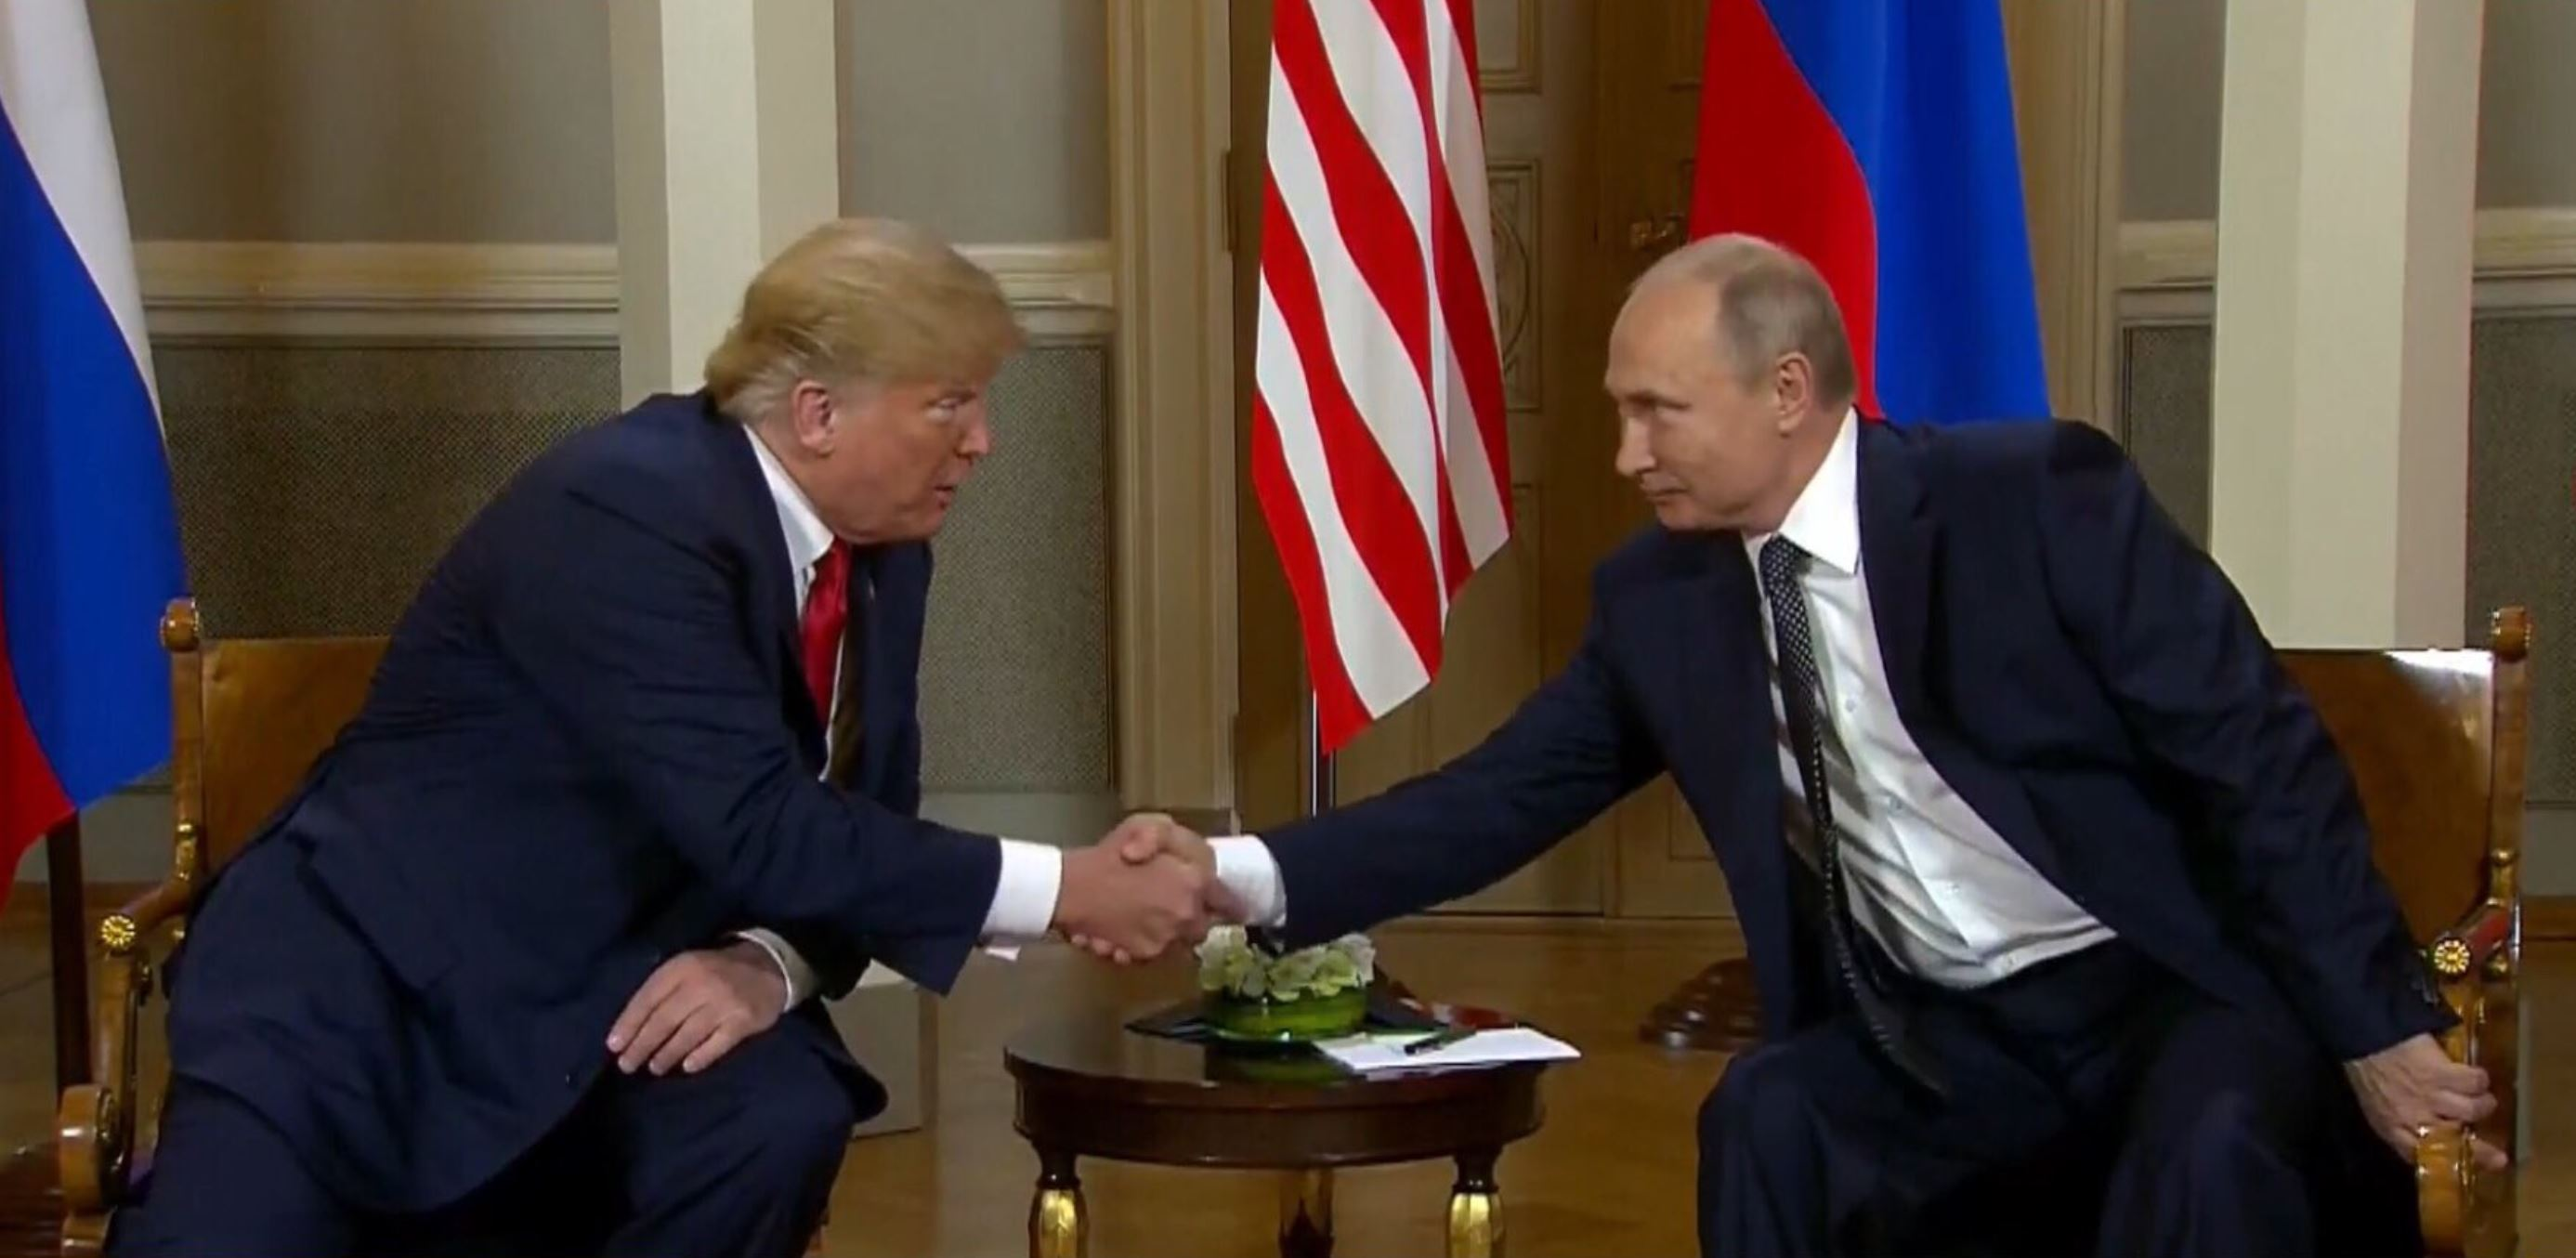 Pentagon, U.S. Intel Refusing To Brief Trump On New US Cyber Operation Against Russia: NY Times